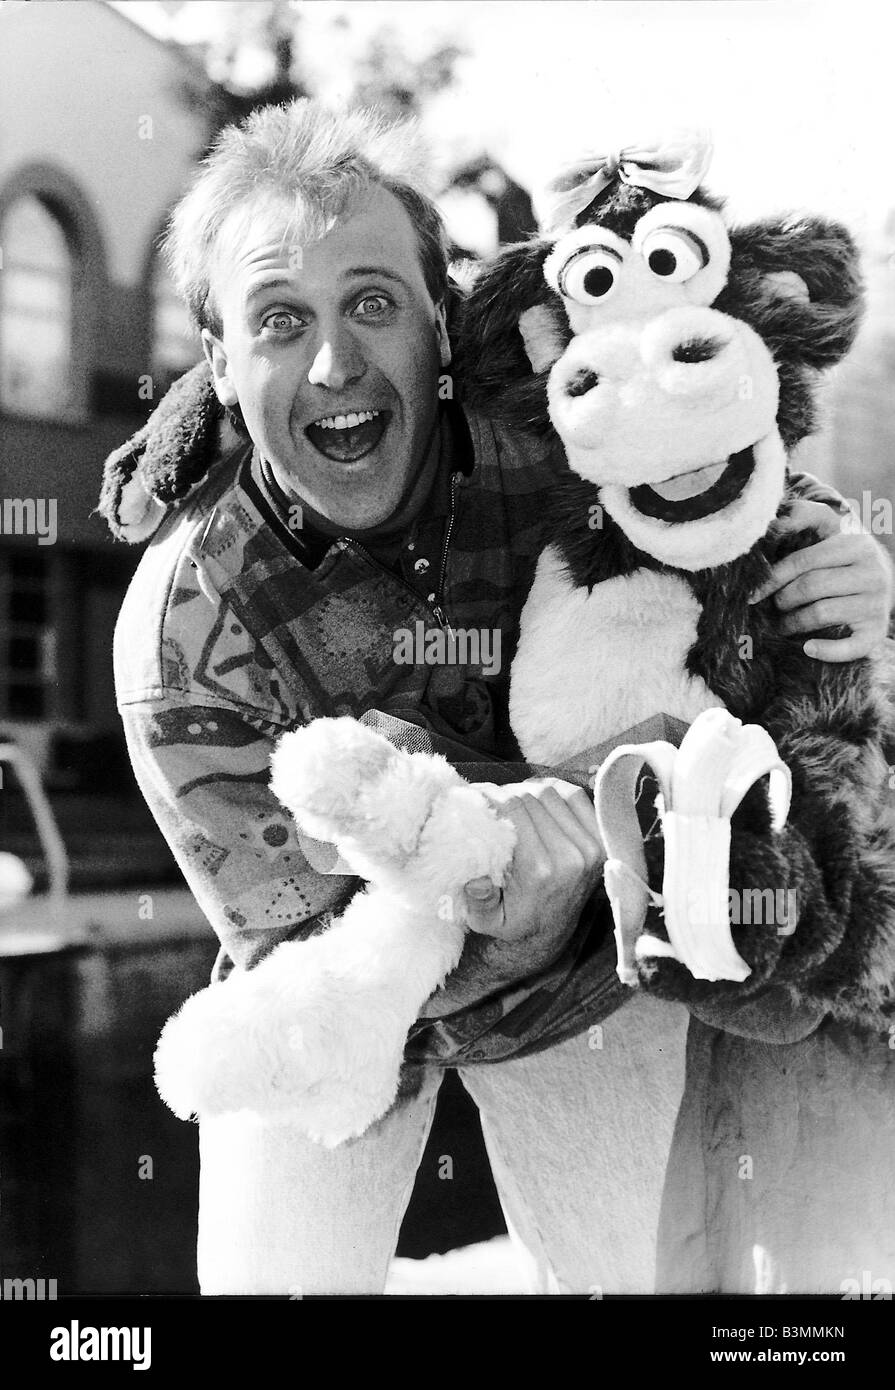 Mike Brosnan TV presenter with Chuck the Chimpanzee - Stock Image